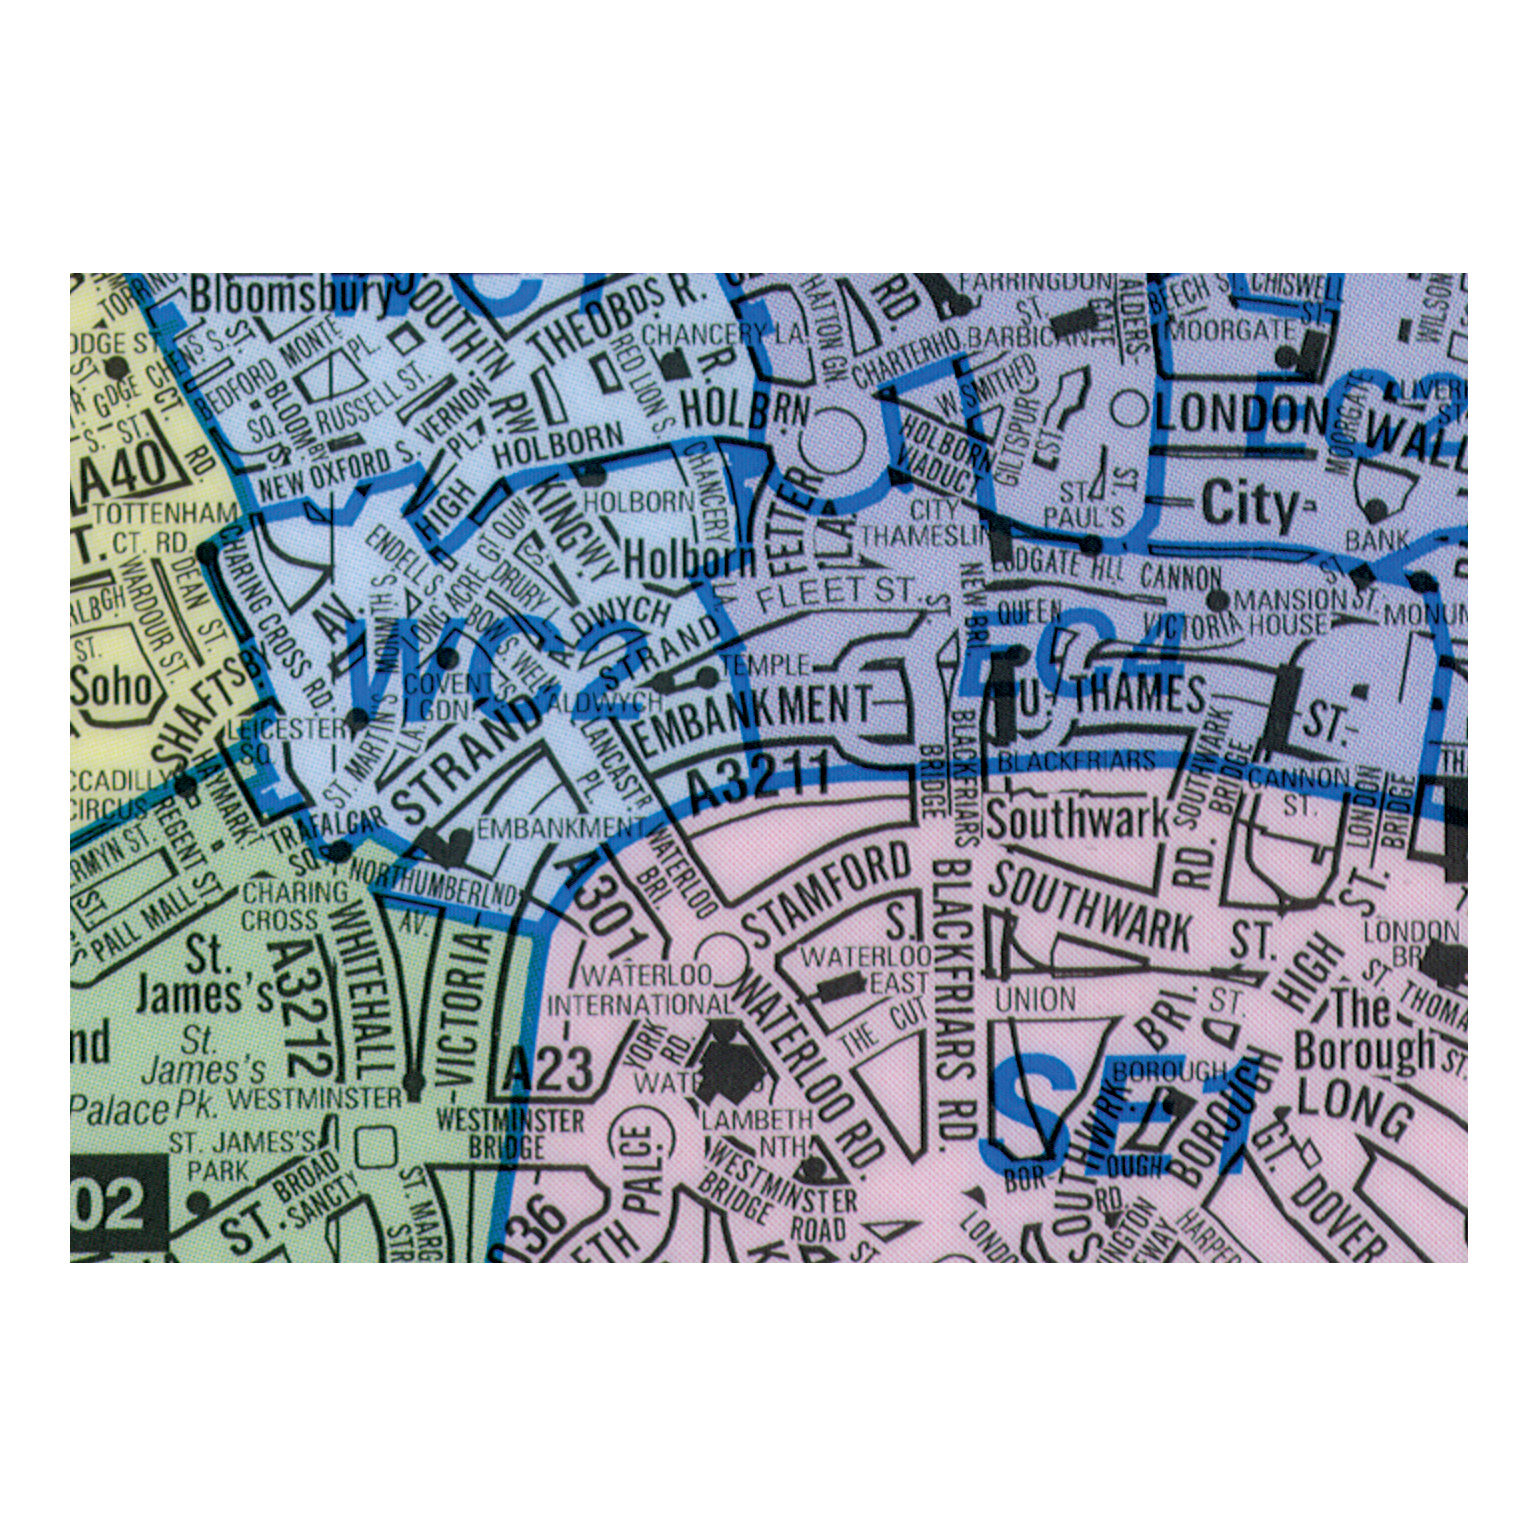 London Map Districts.Map Marketing Postal Districts Of London Map Unframed 1 Mile To 1